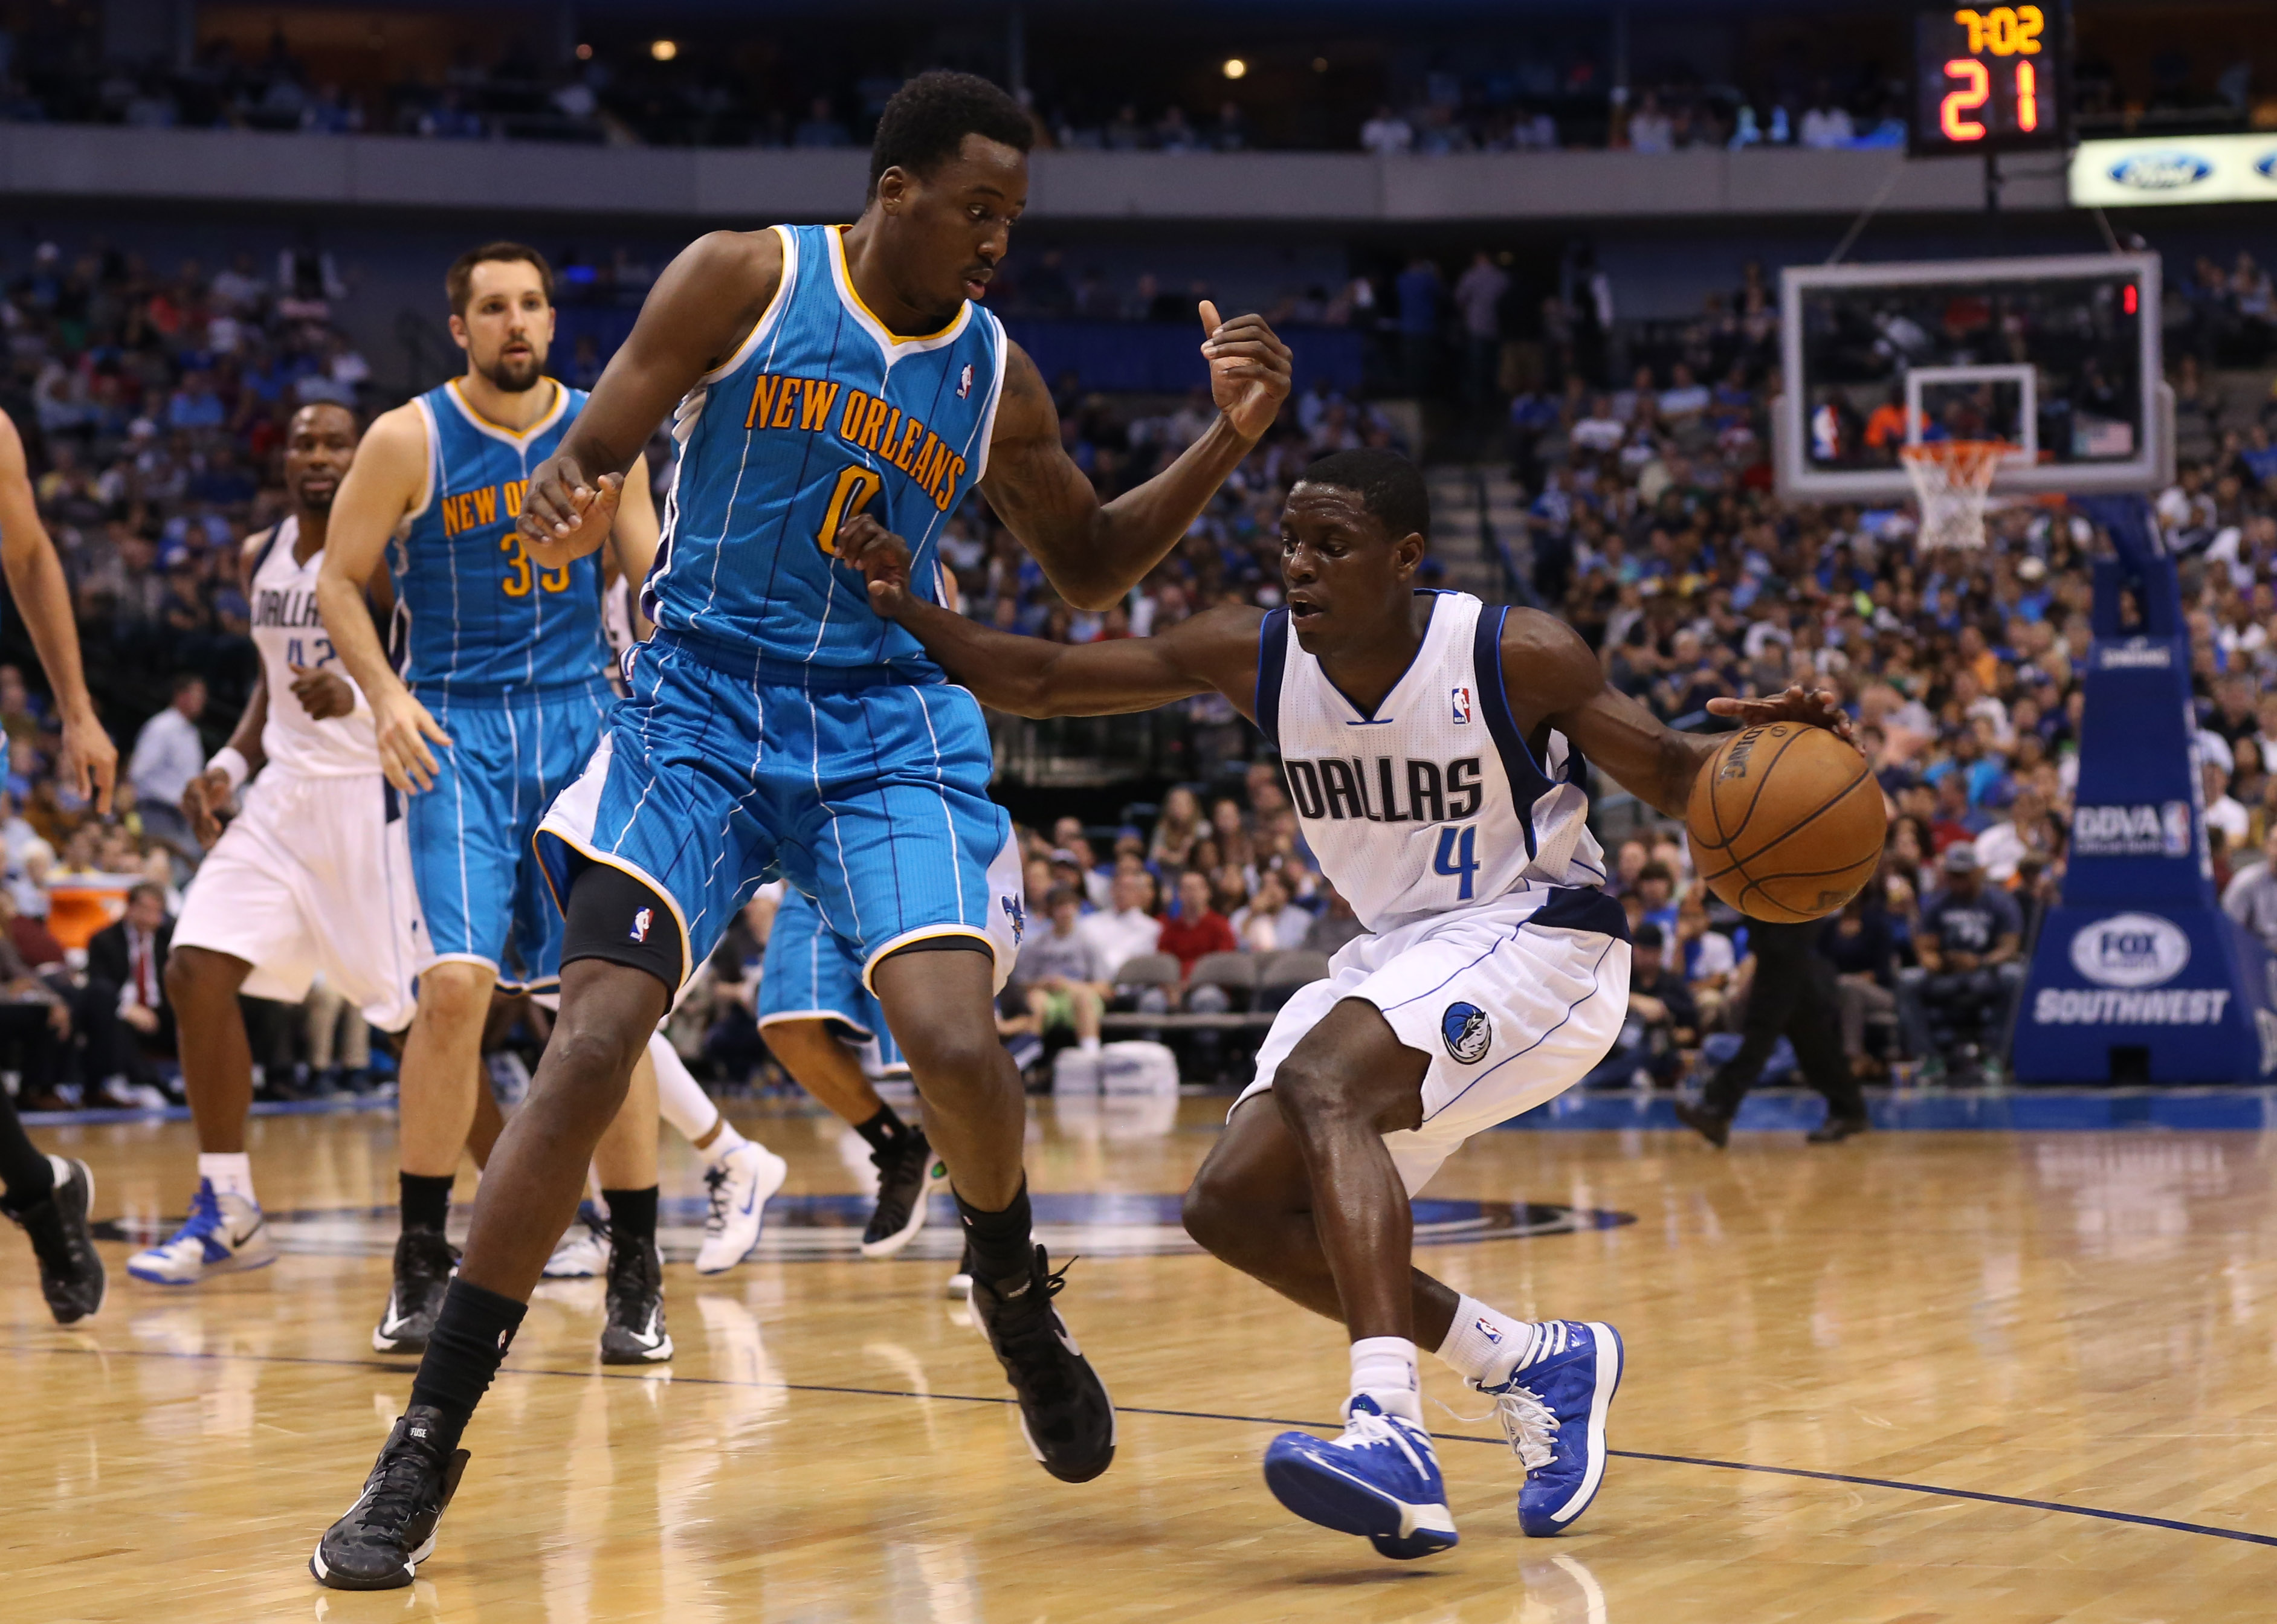 Darren Collison drives against New Orleans. (USA Today)